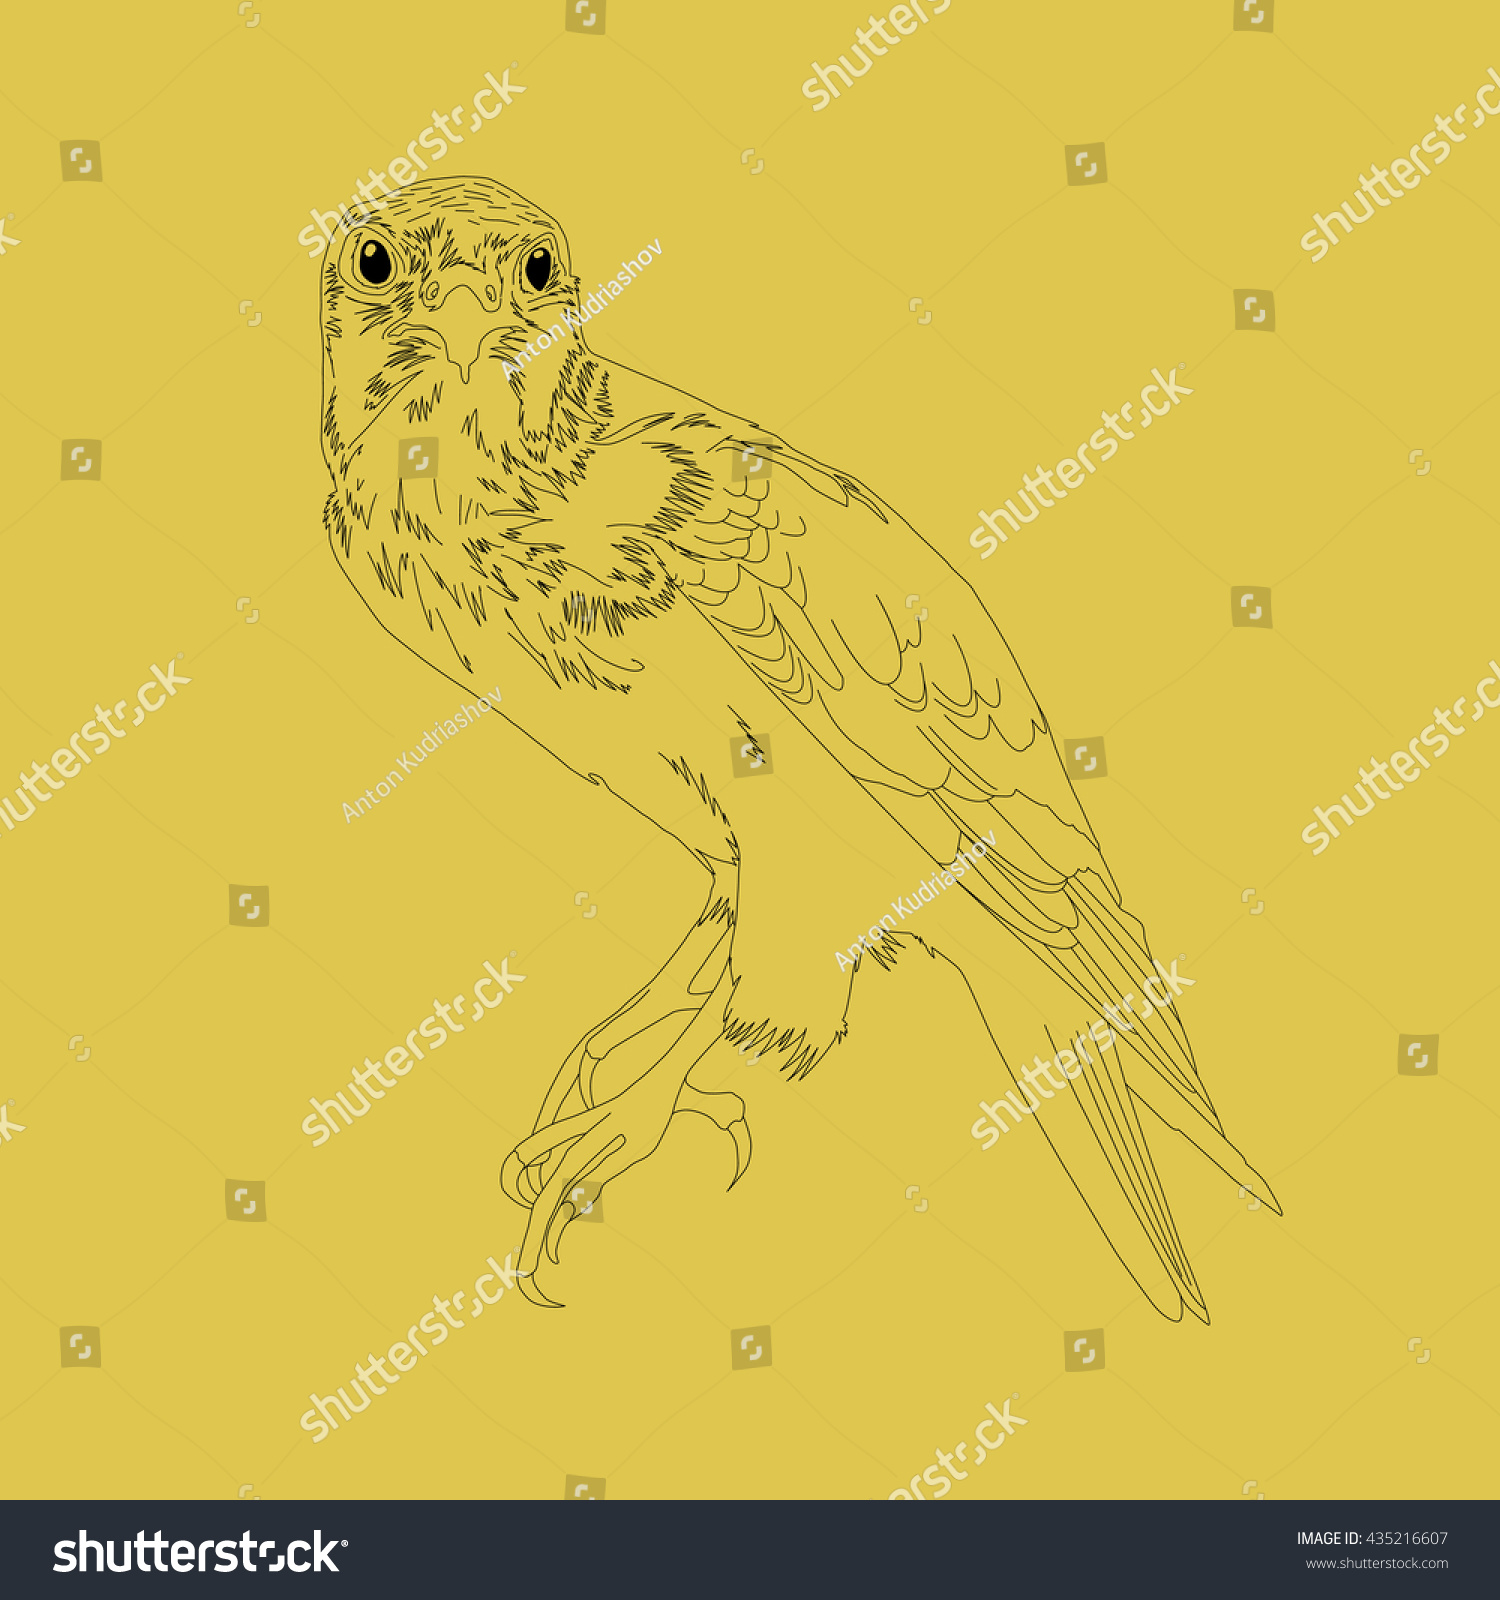 Drawing Vector Isolated Predatory Bird Outlines Stock Vector